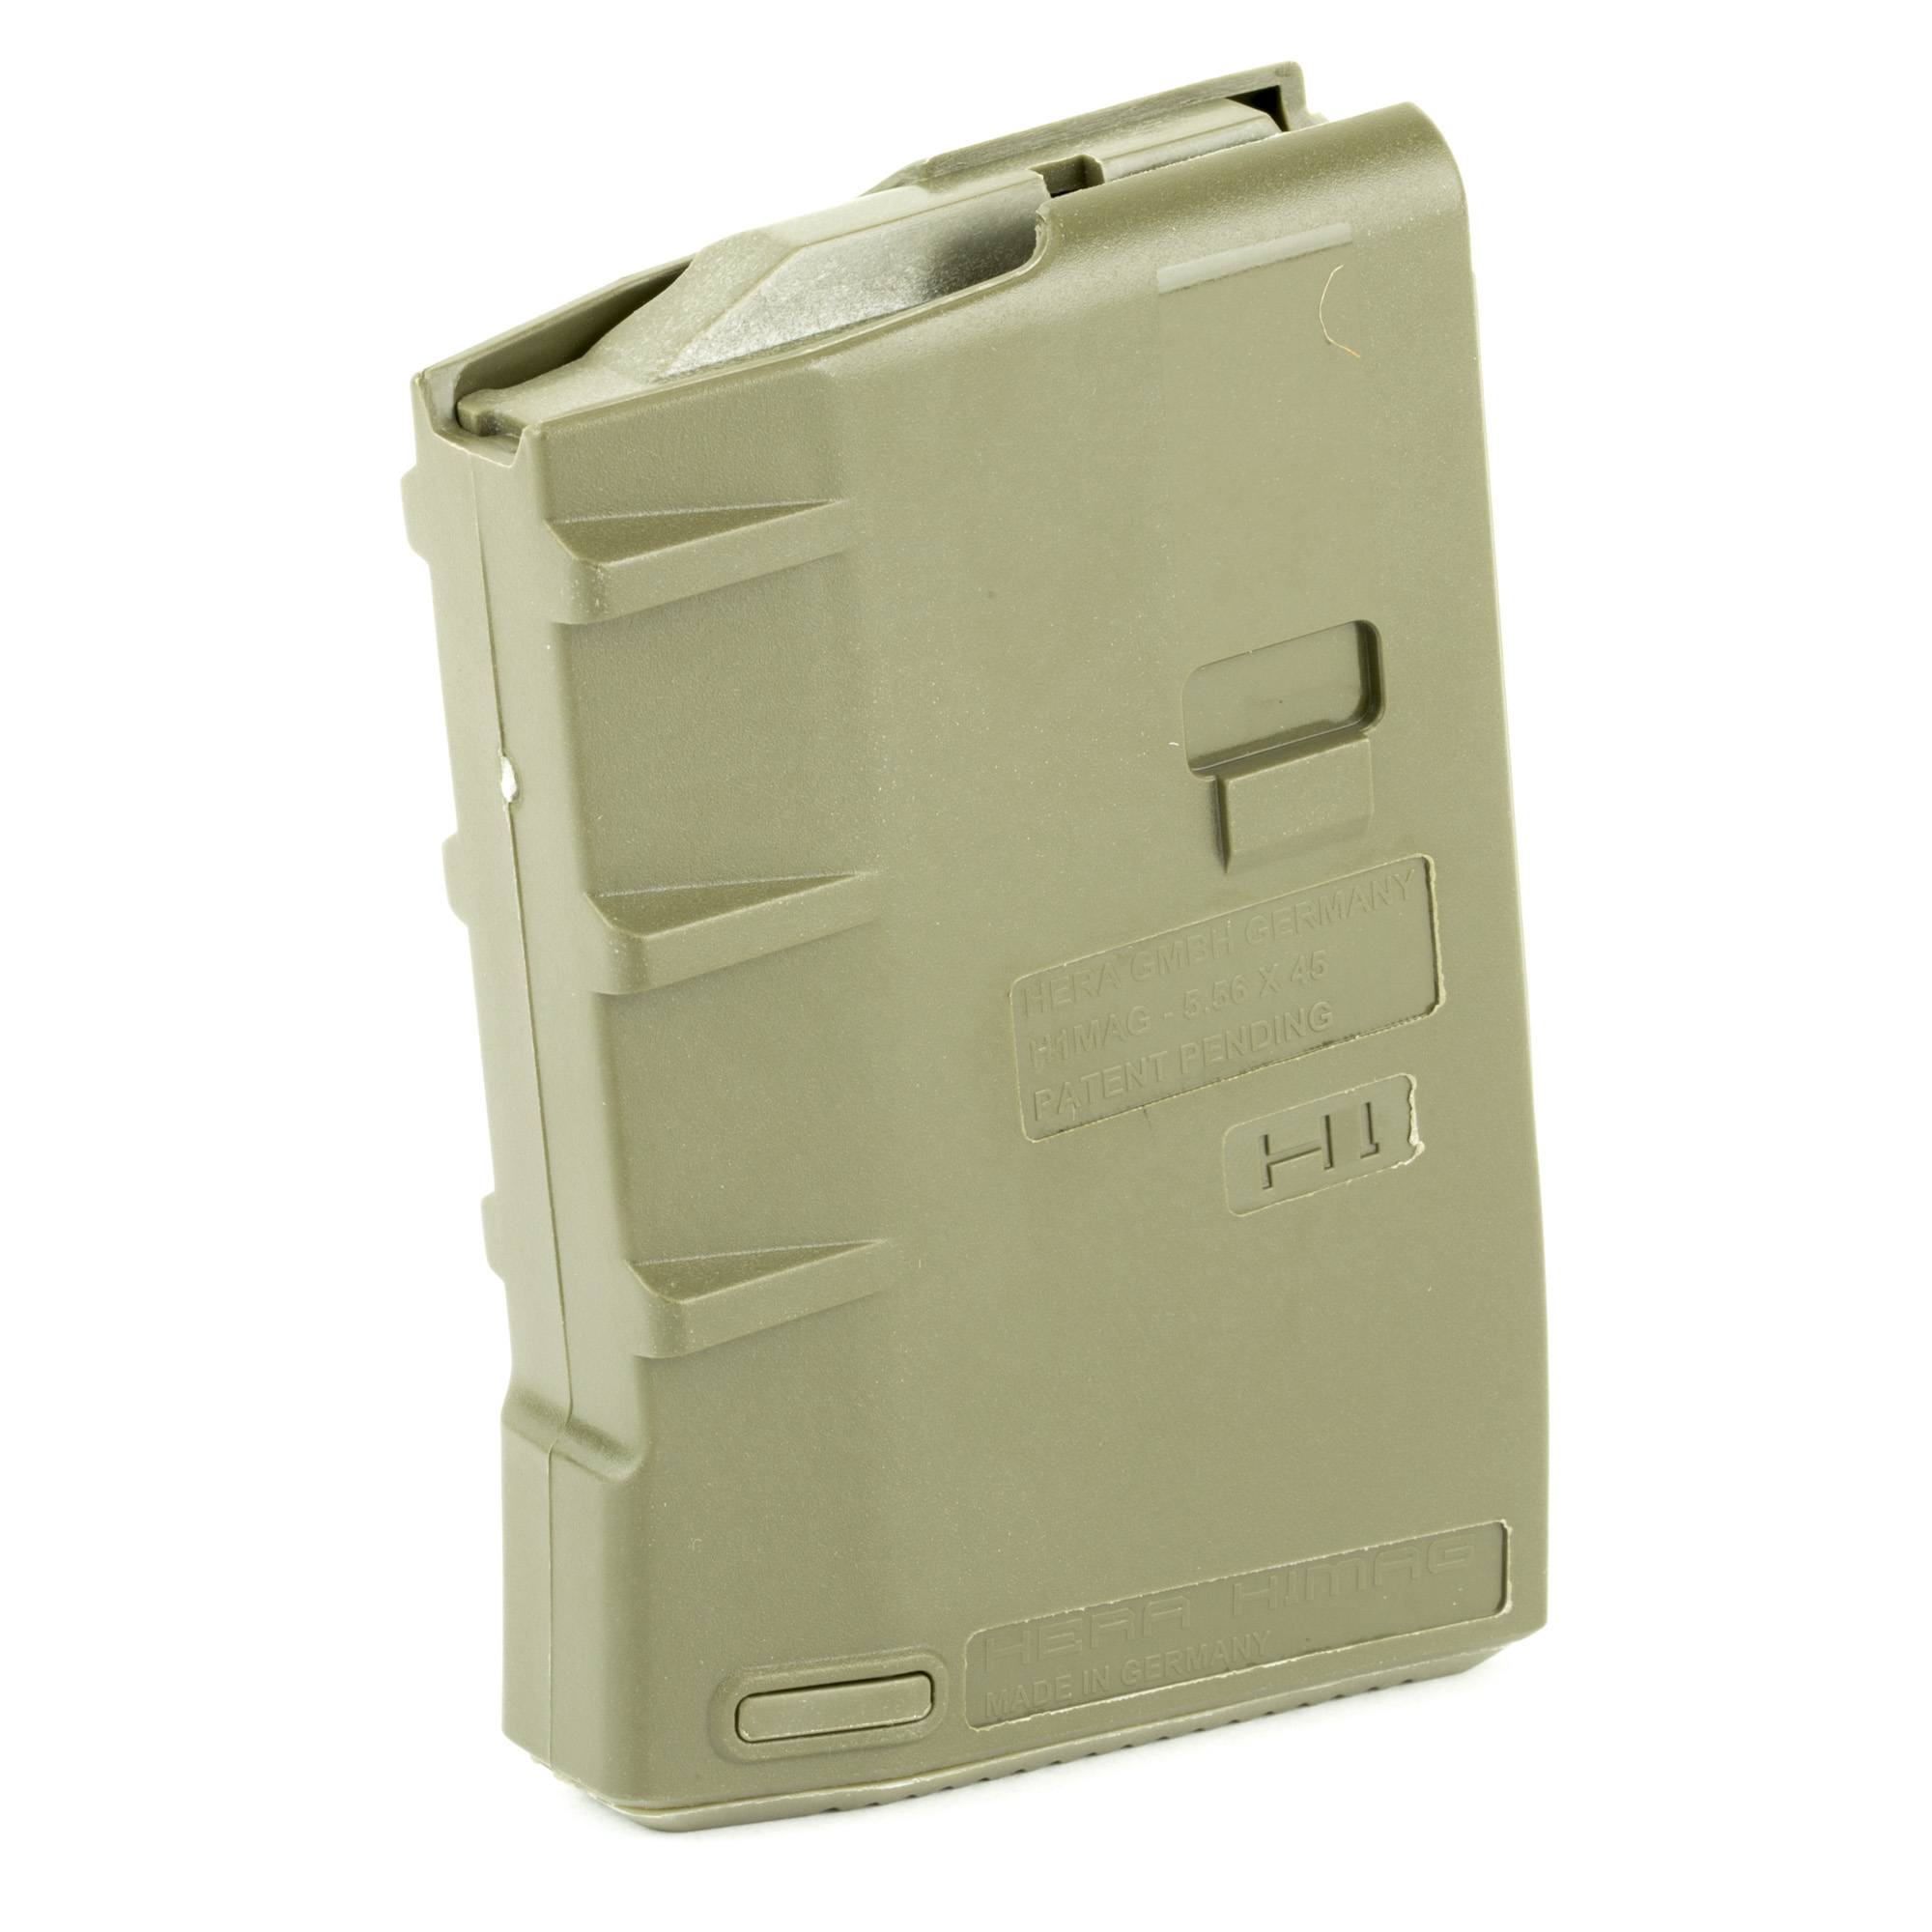 """The HERA USA H1 magazines are built from high quality impact resistant polymer. HERA magazines are compatible with standard AR-15 rifles"""" pistols"""" and lower receivers."""